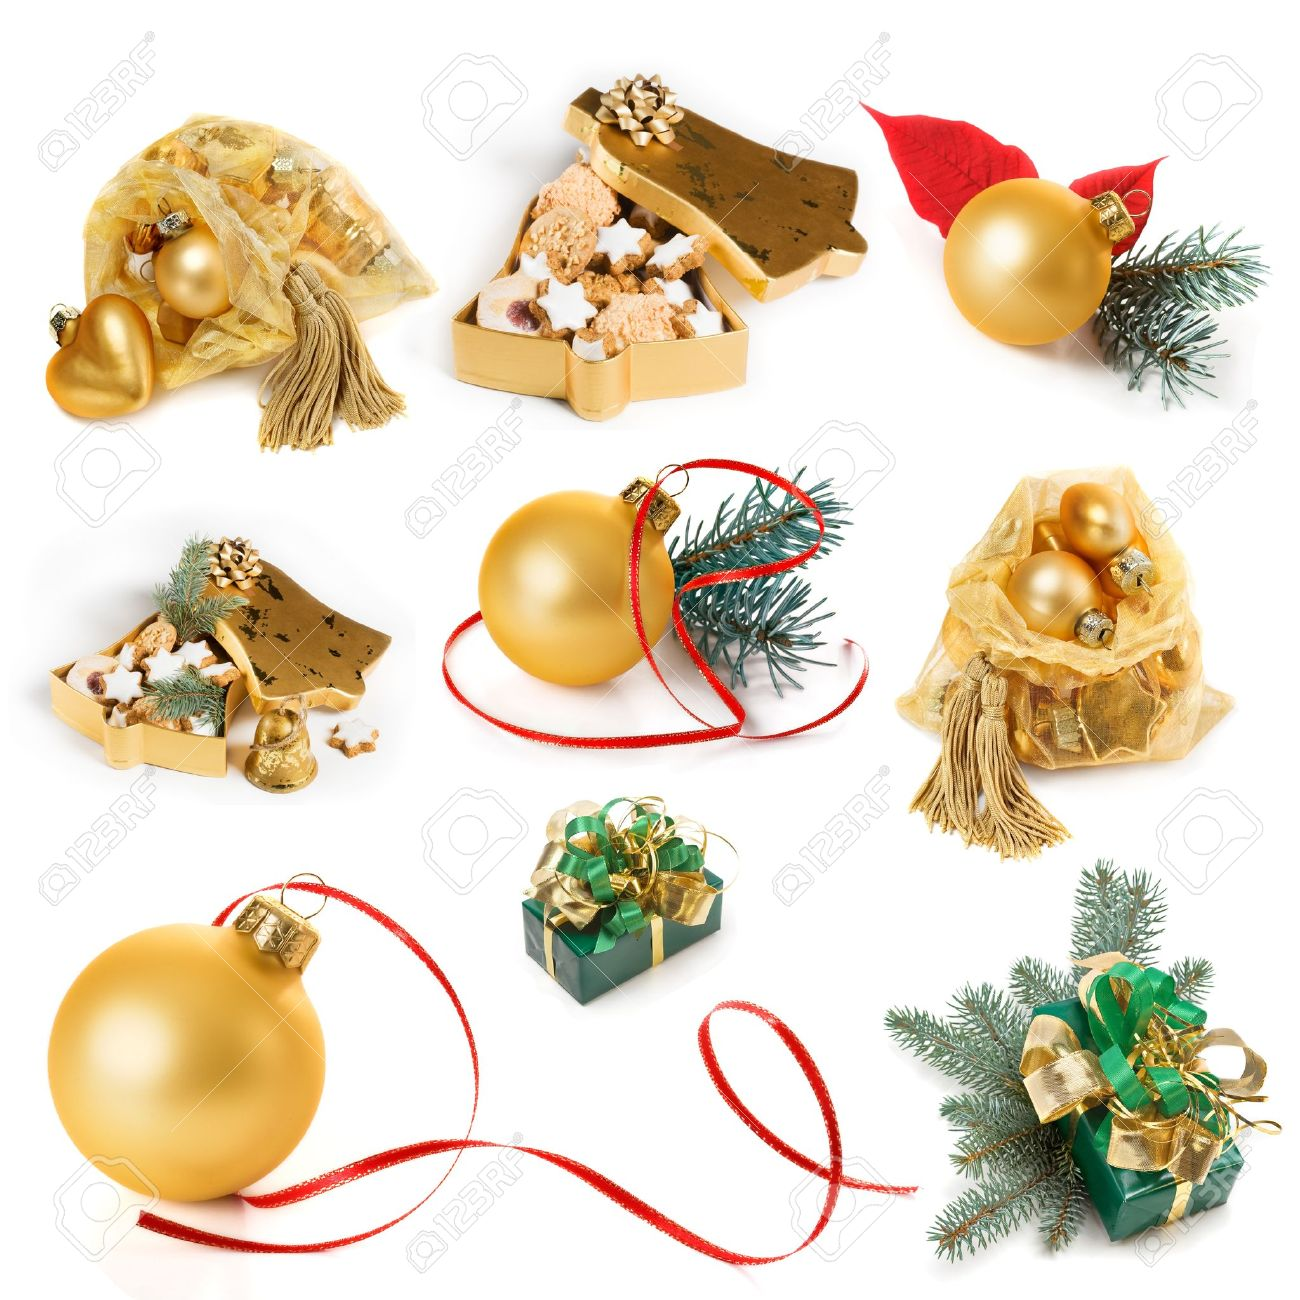 Christmas presents and decoration in gold, collection on white background Stock Photo - 10542312